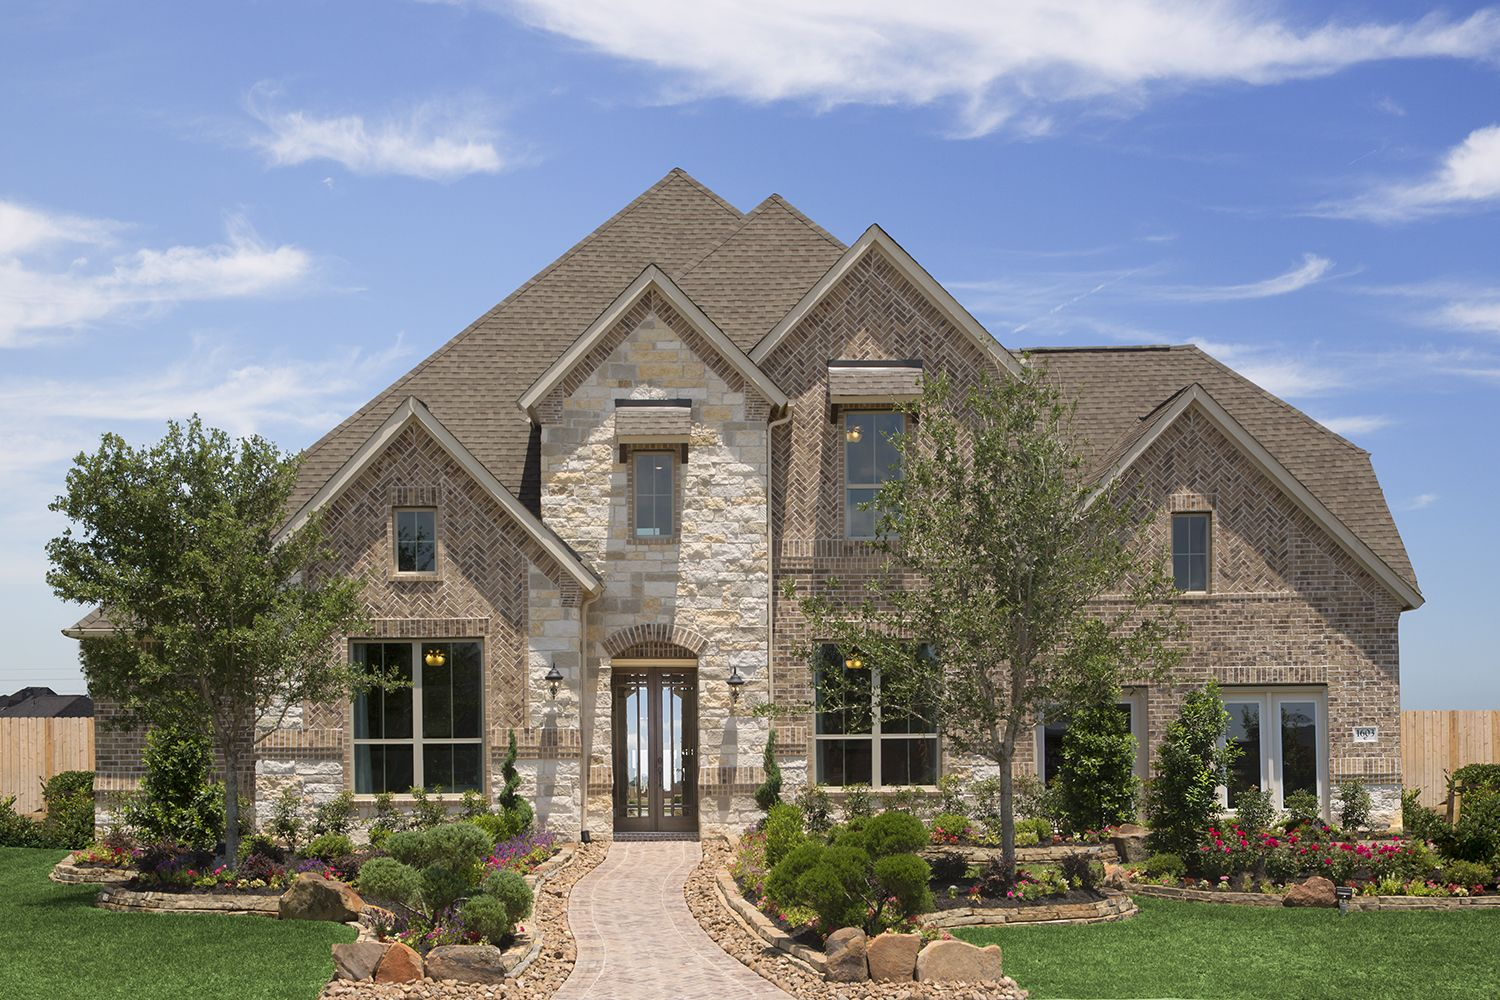 Brick And Stone Exterior Elevation Coventry Homes In Hidden Lakes League City Tx Design 7312 Coventry Homes Model Homes Stone Exterior Houses